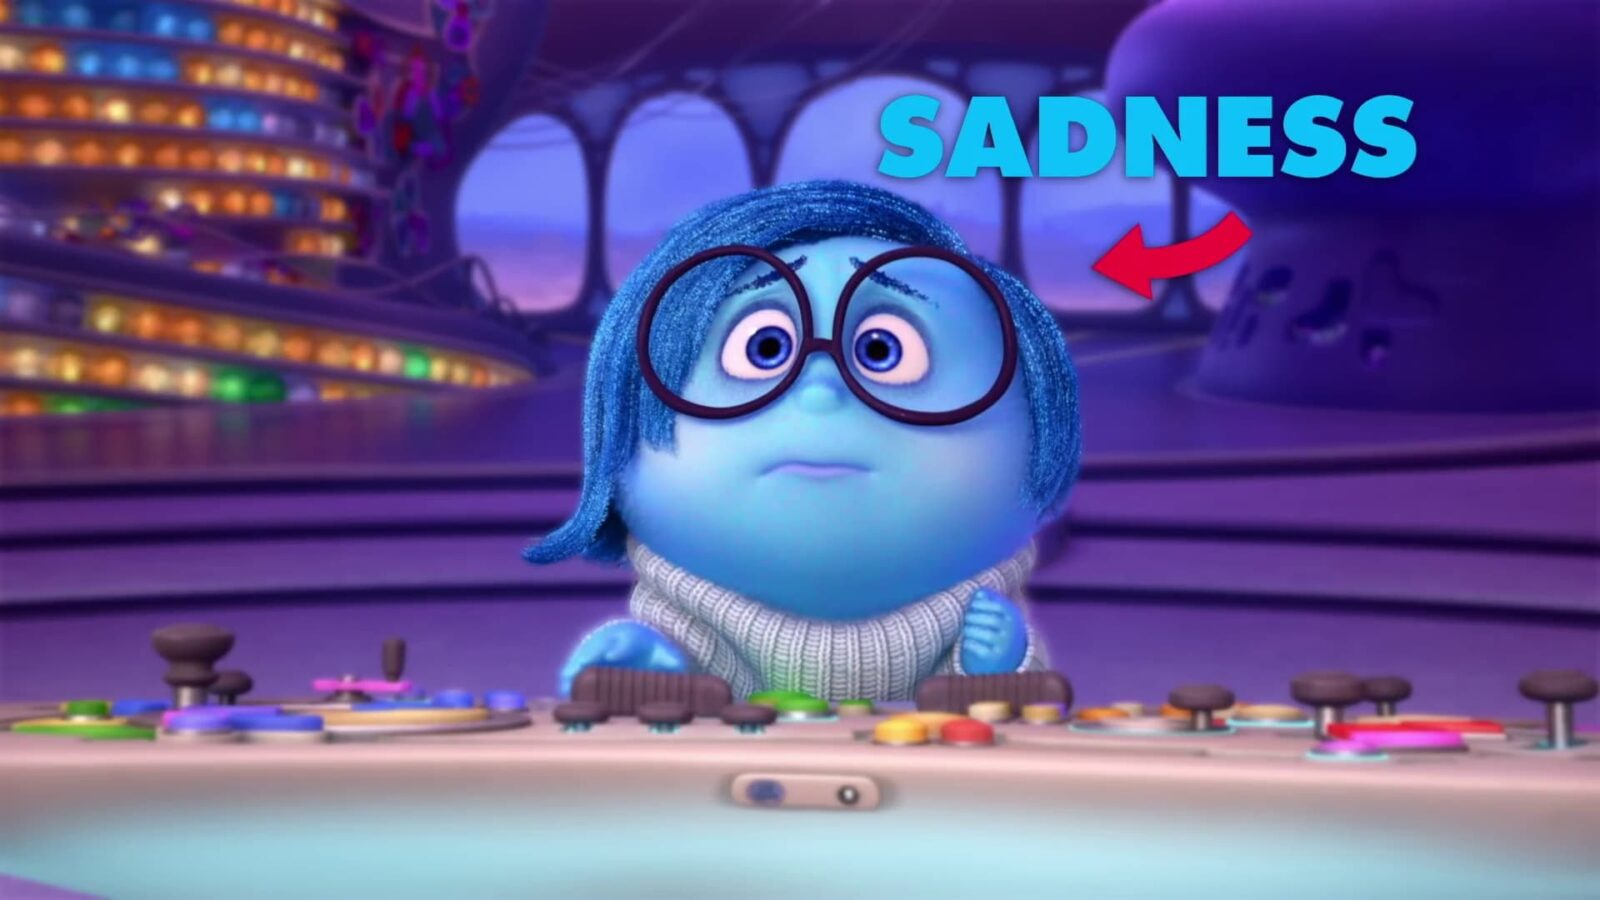 Hd Wallpaper Cars 2015 17 Inside Out Sadness Wallpapers Hd Download